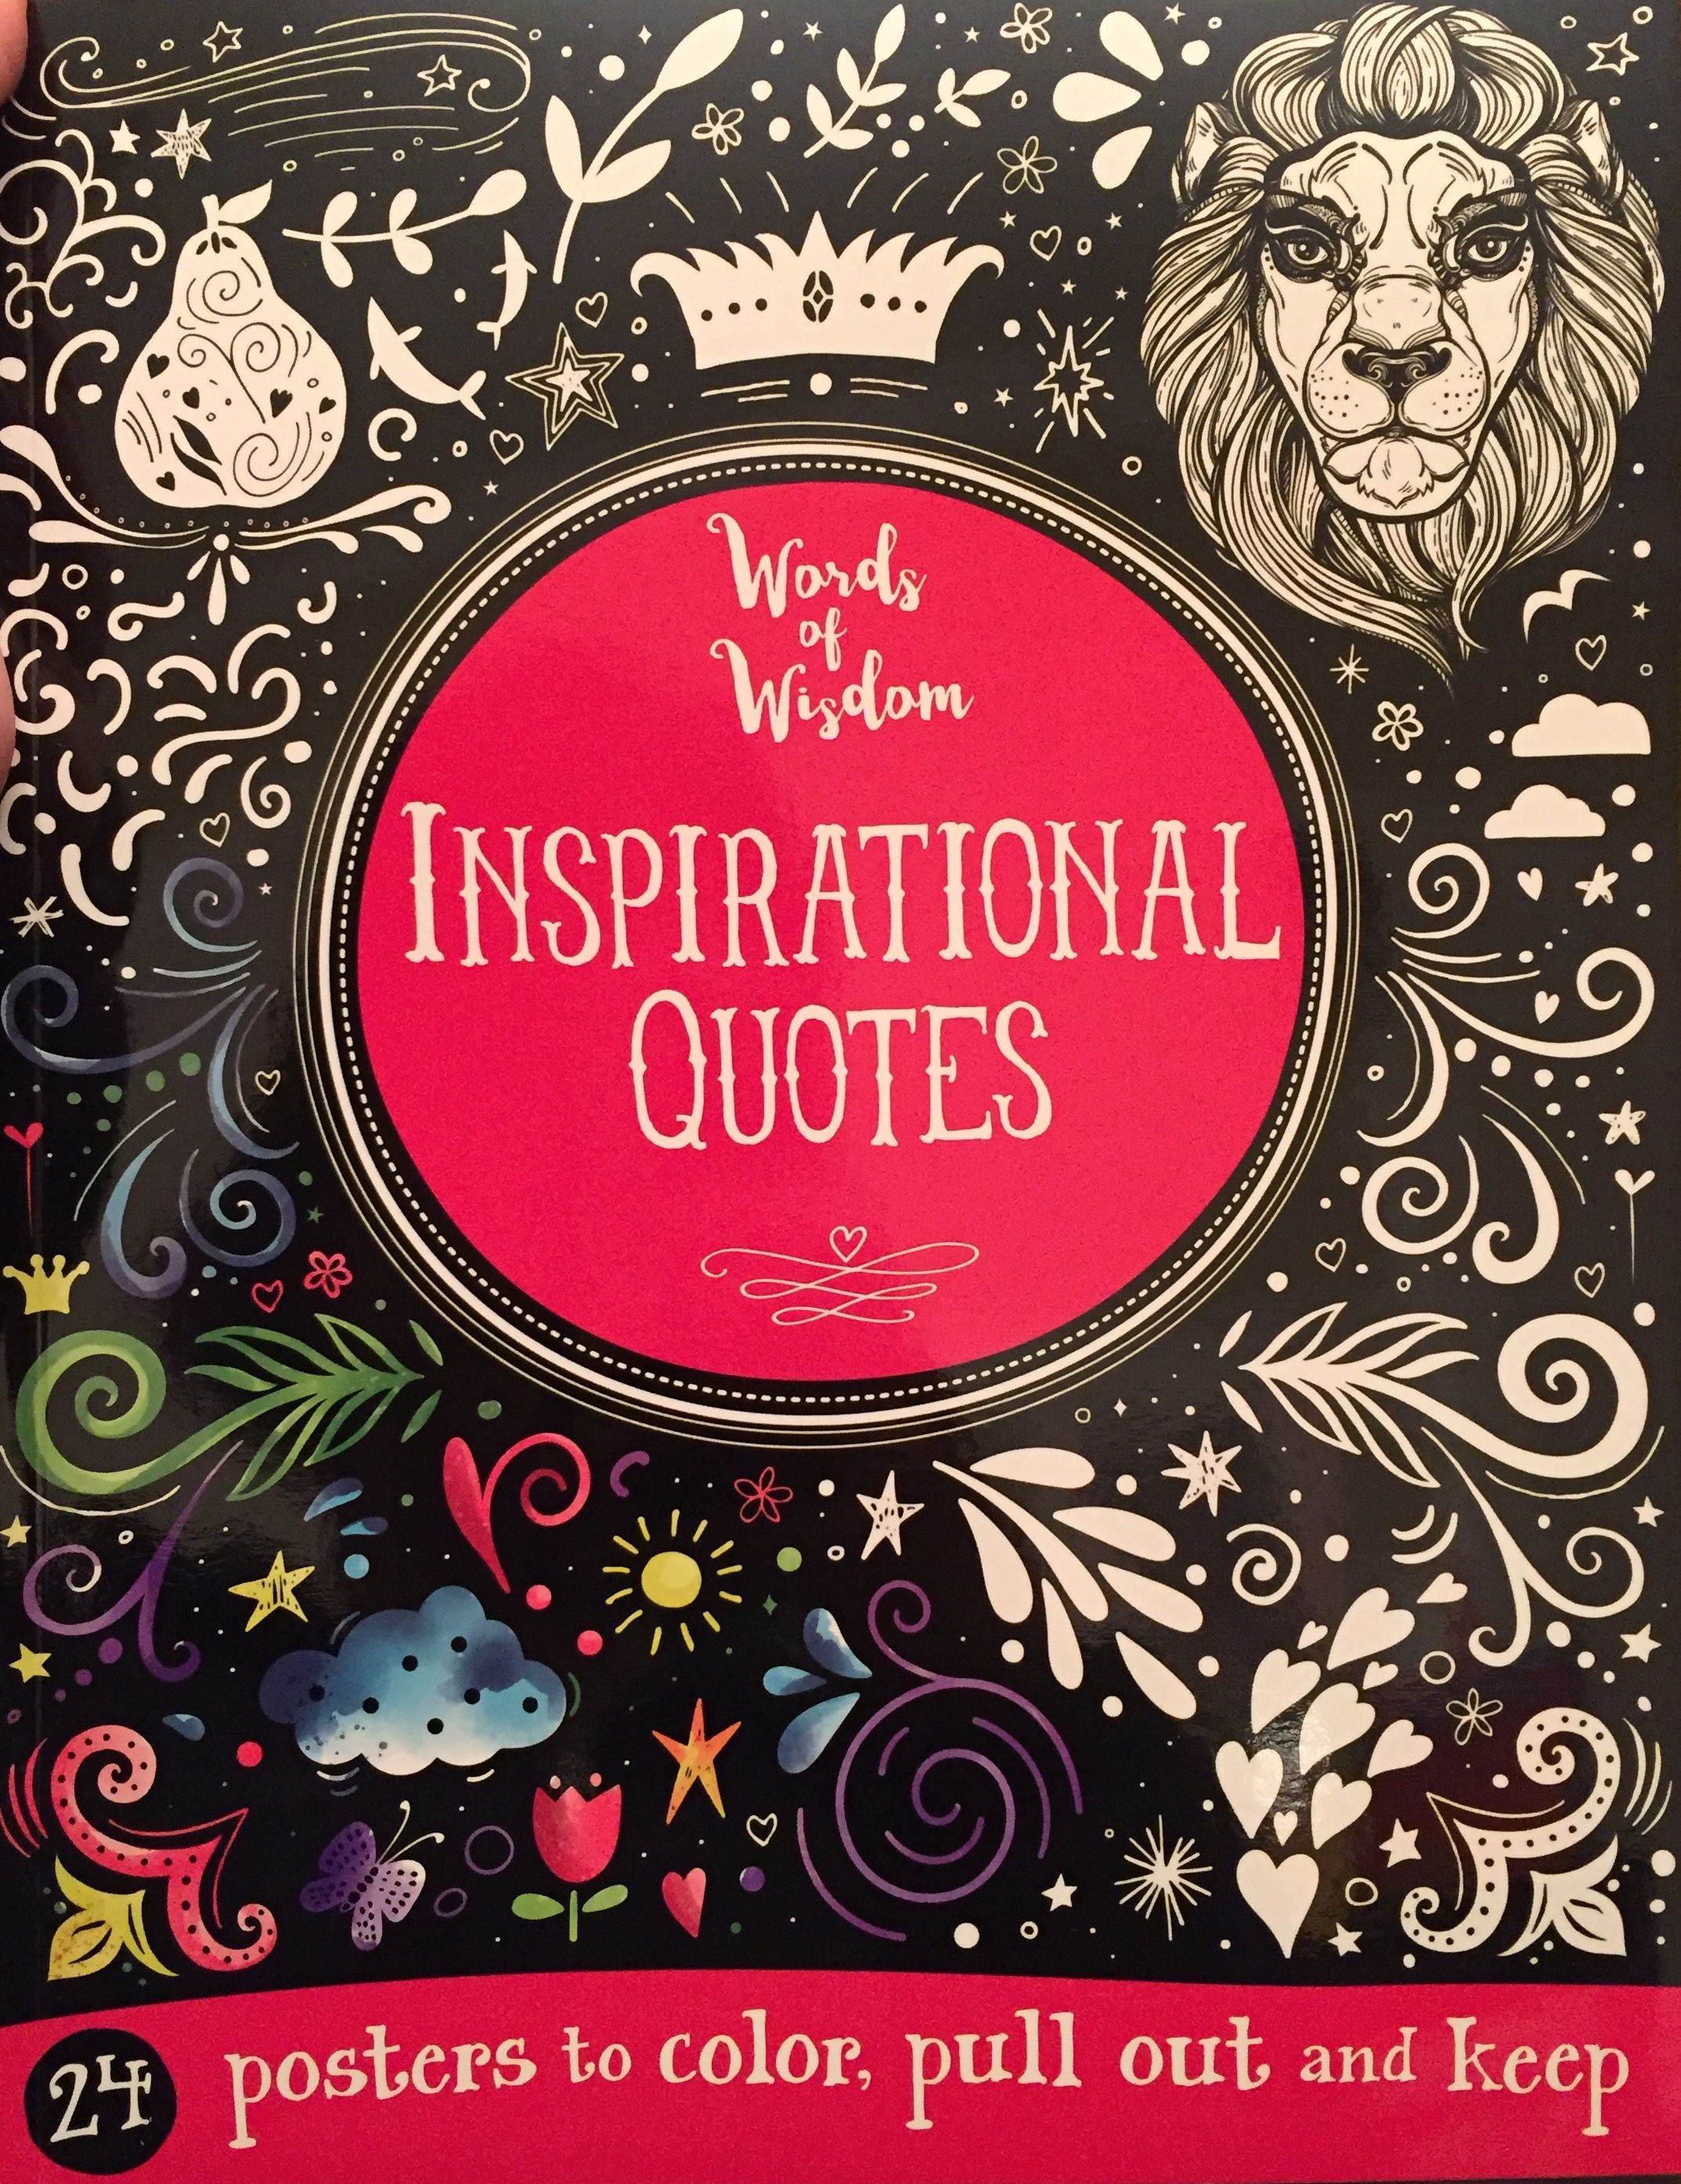 540 Usborne Inspirational Quotes Coloring Book Picture HD